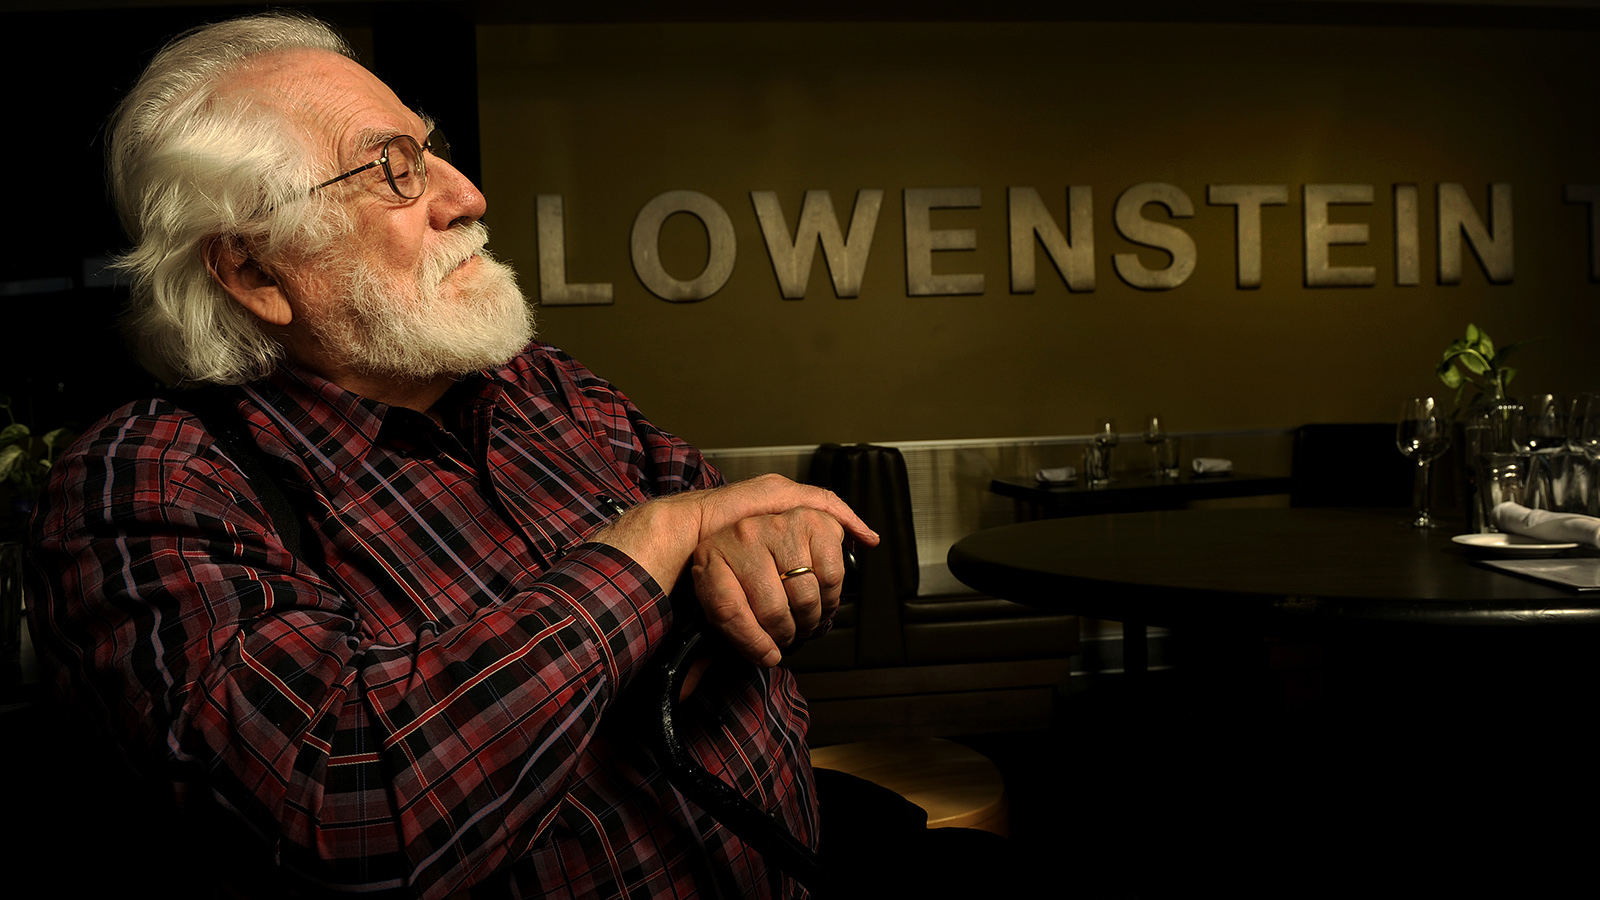 Photo: Henry Lowenstein 2 (Denver Post image)